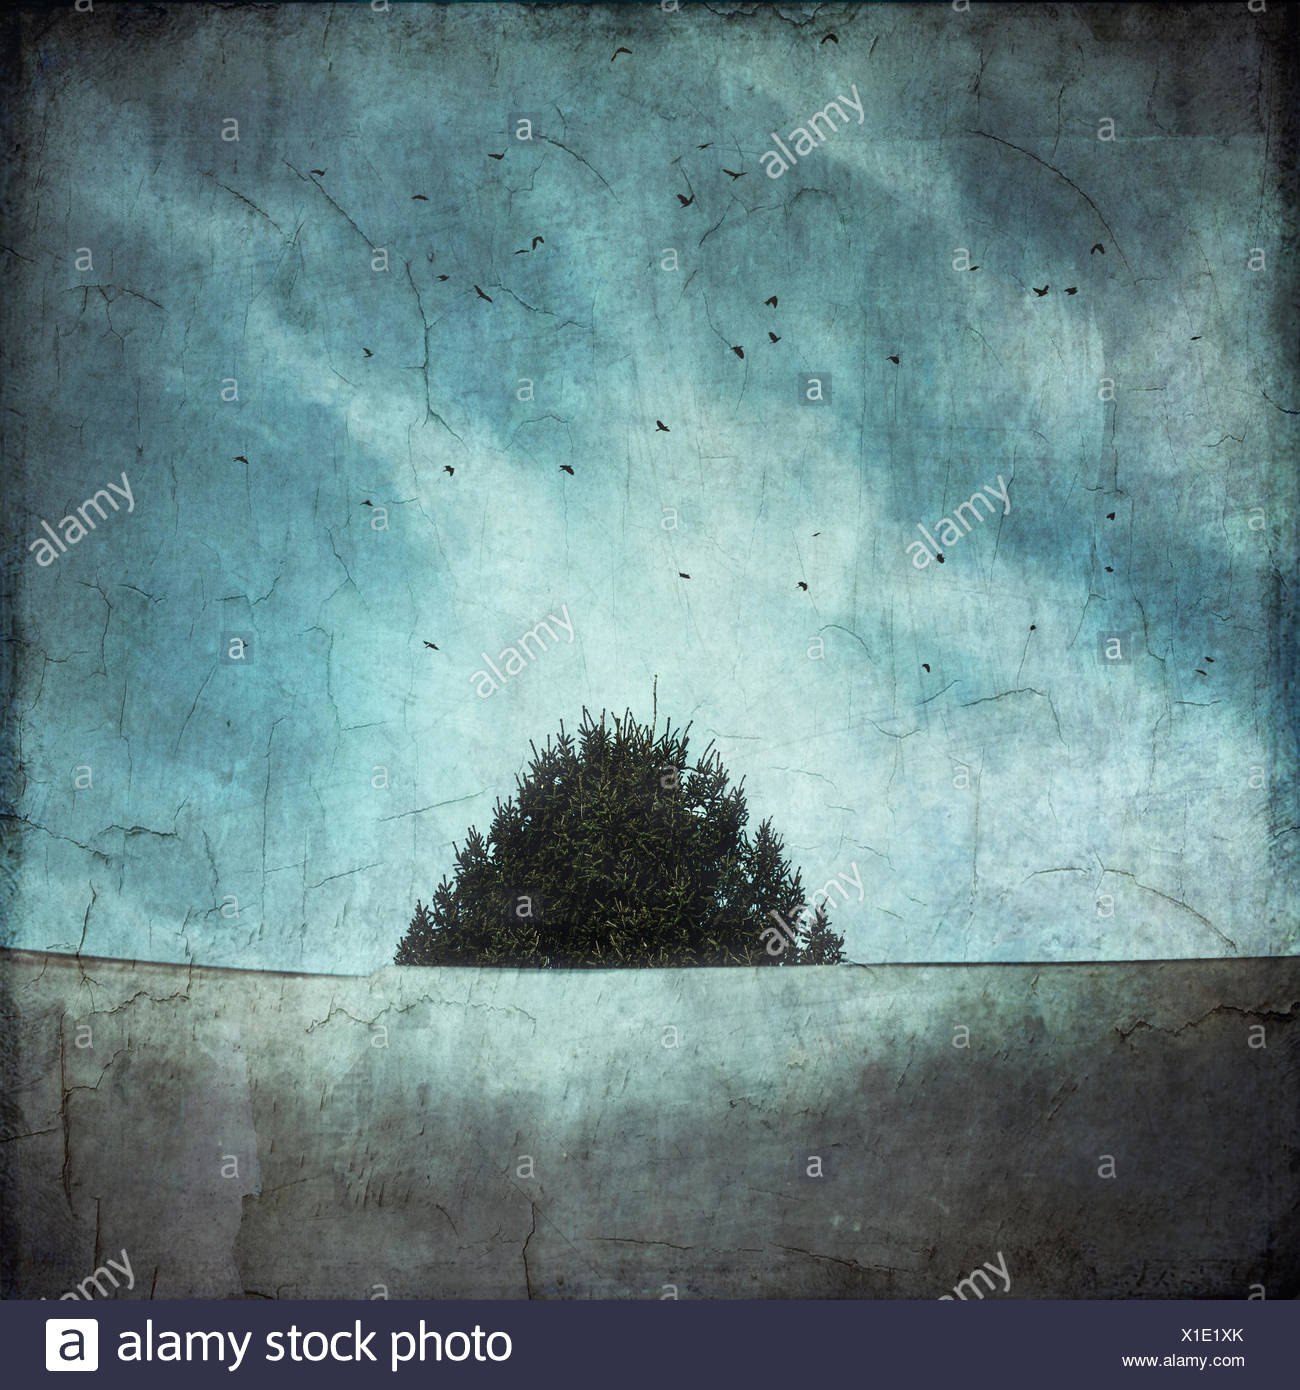 Treetop and roof with flying birds, textured effect - Stock Image